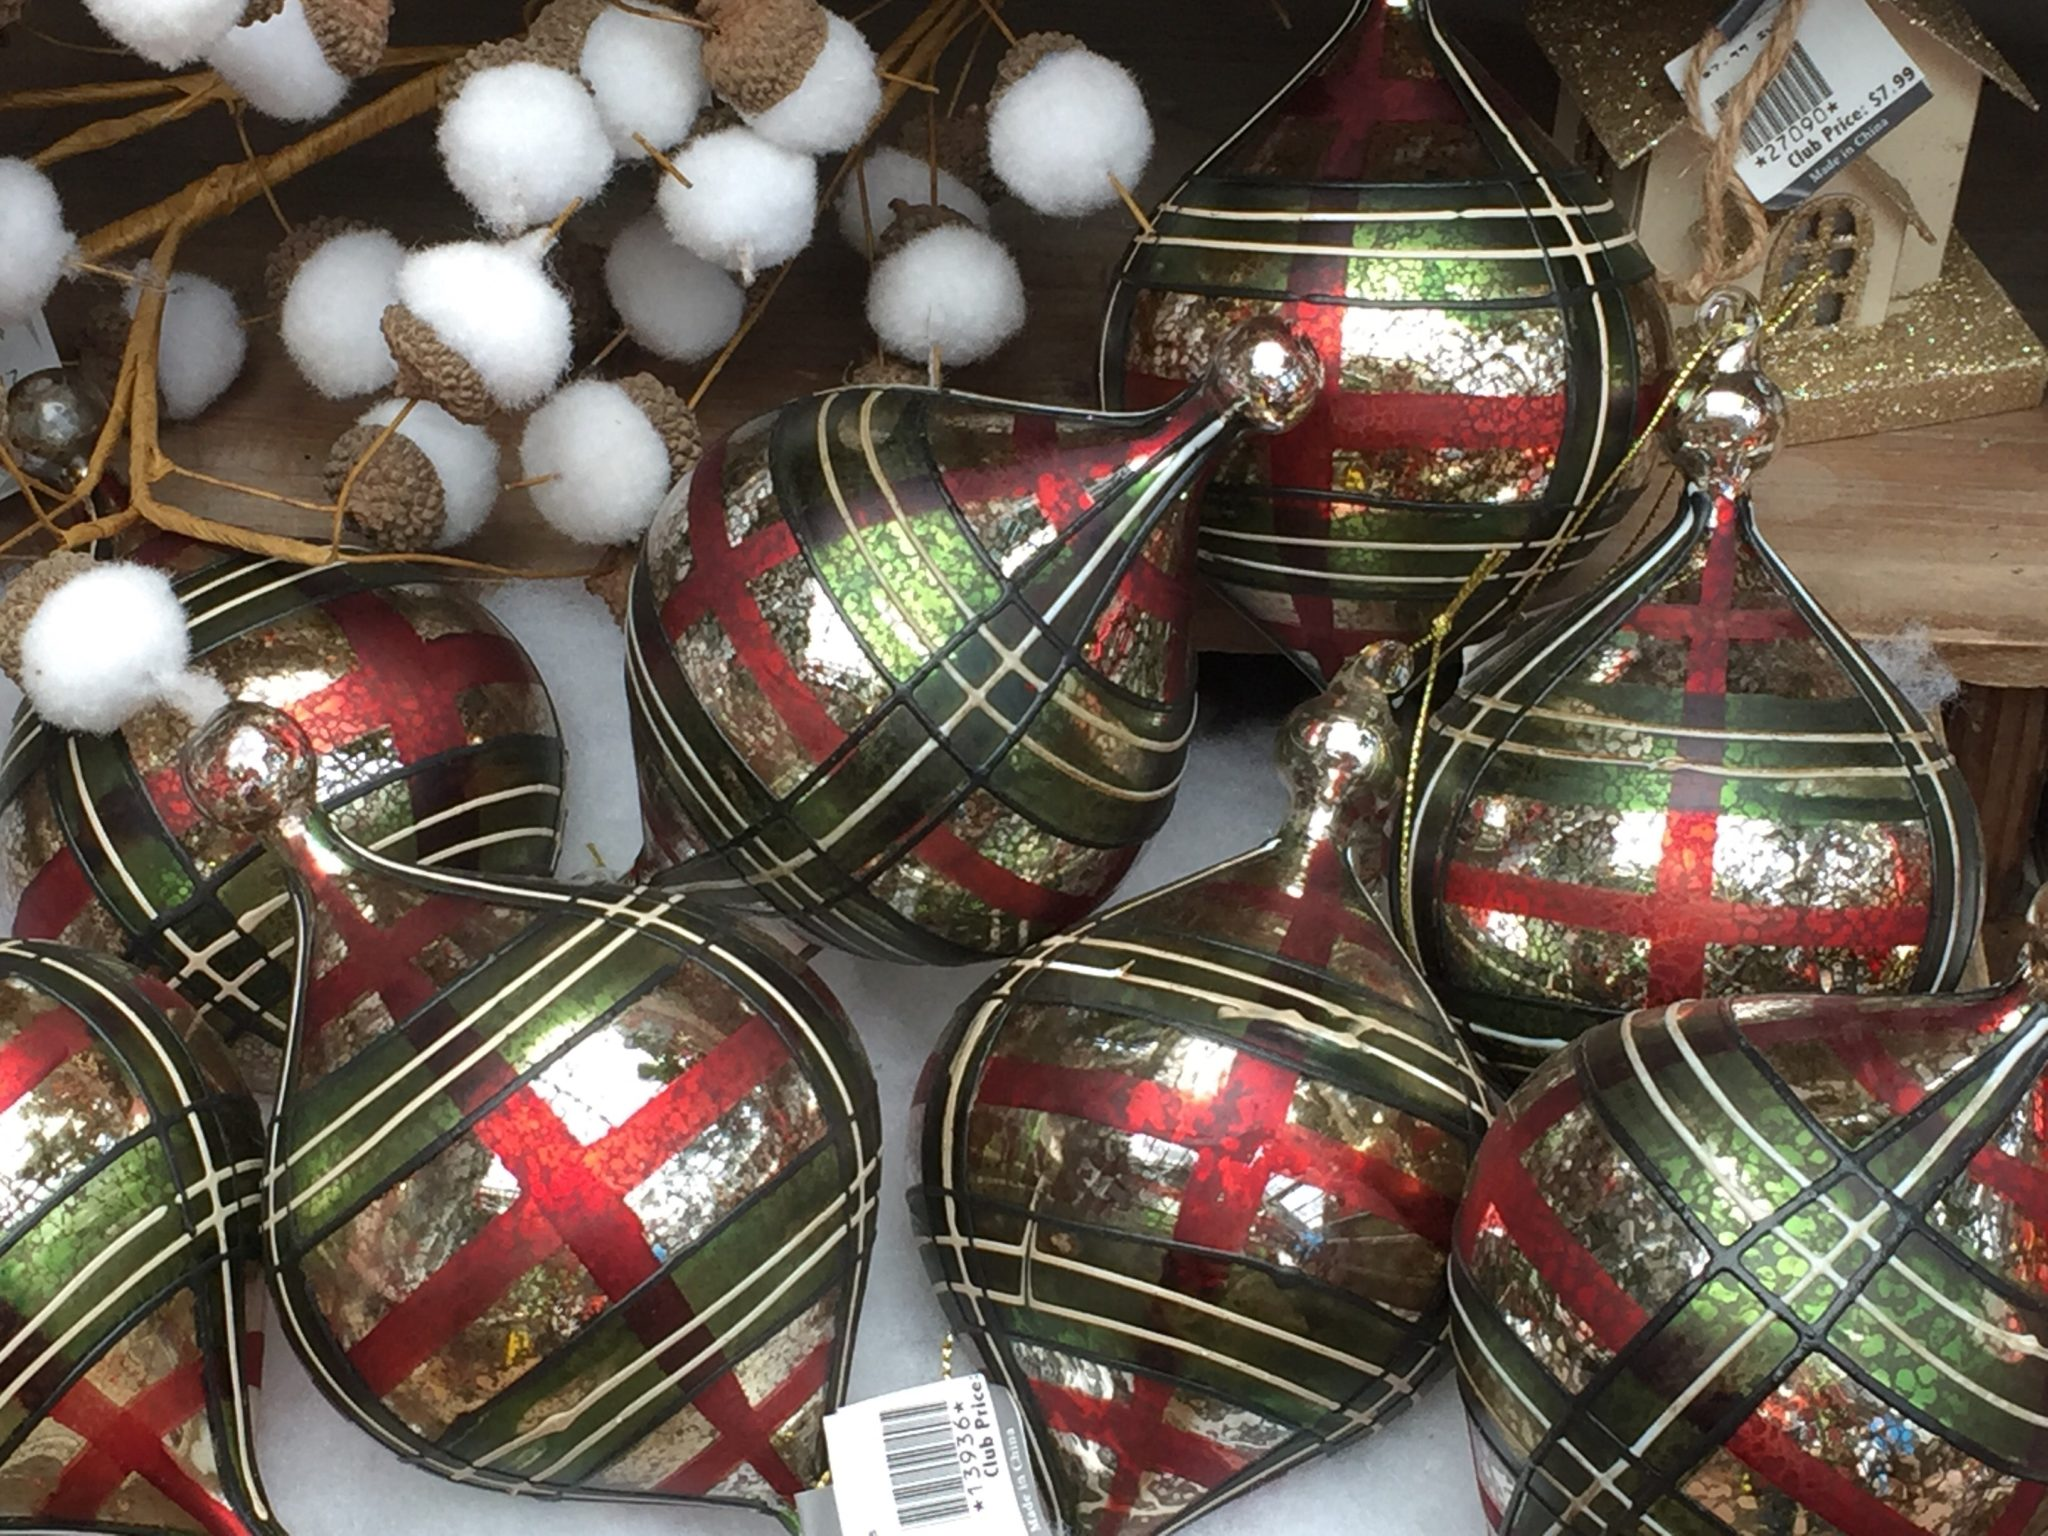 Christmas Ornaments at Patuxent Nursery